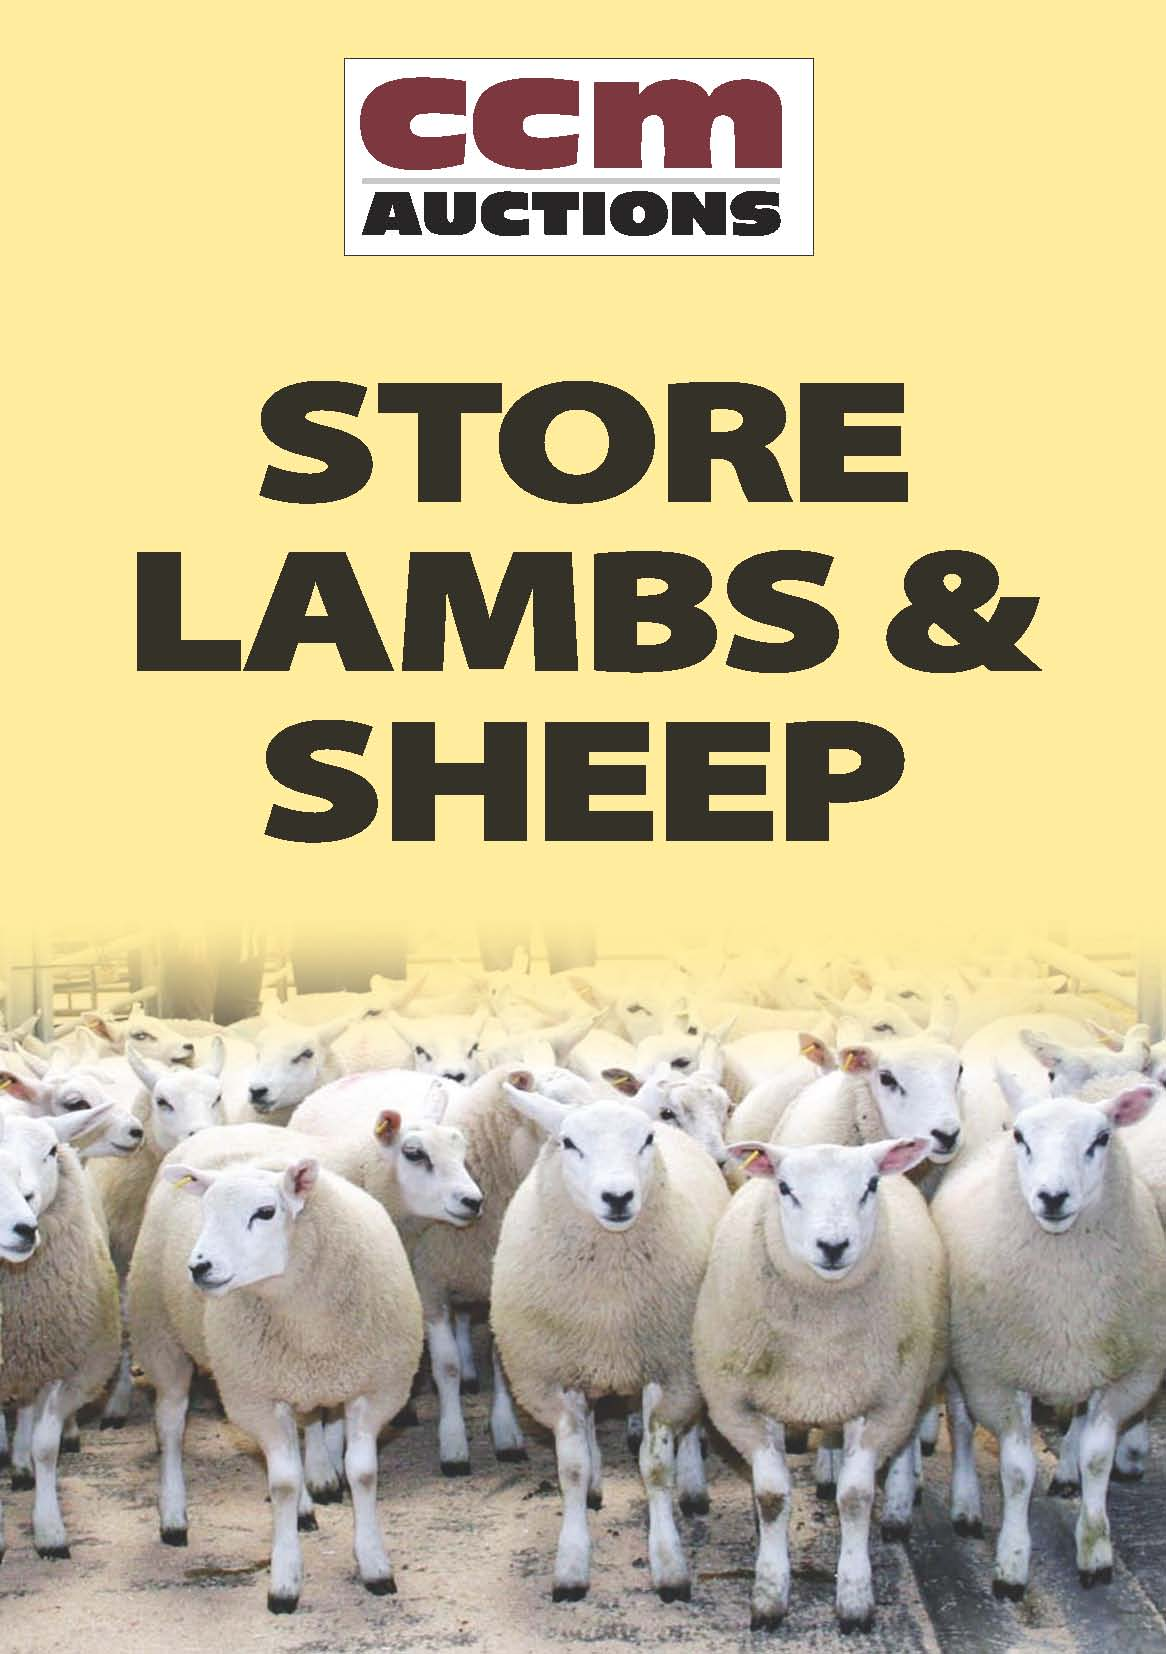 STORE LAMBS & BREEDING SHEEP - WEDNESDAY 25TH JULY 2018